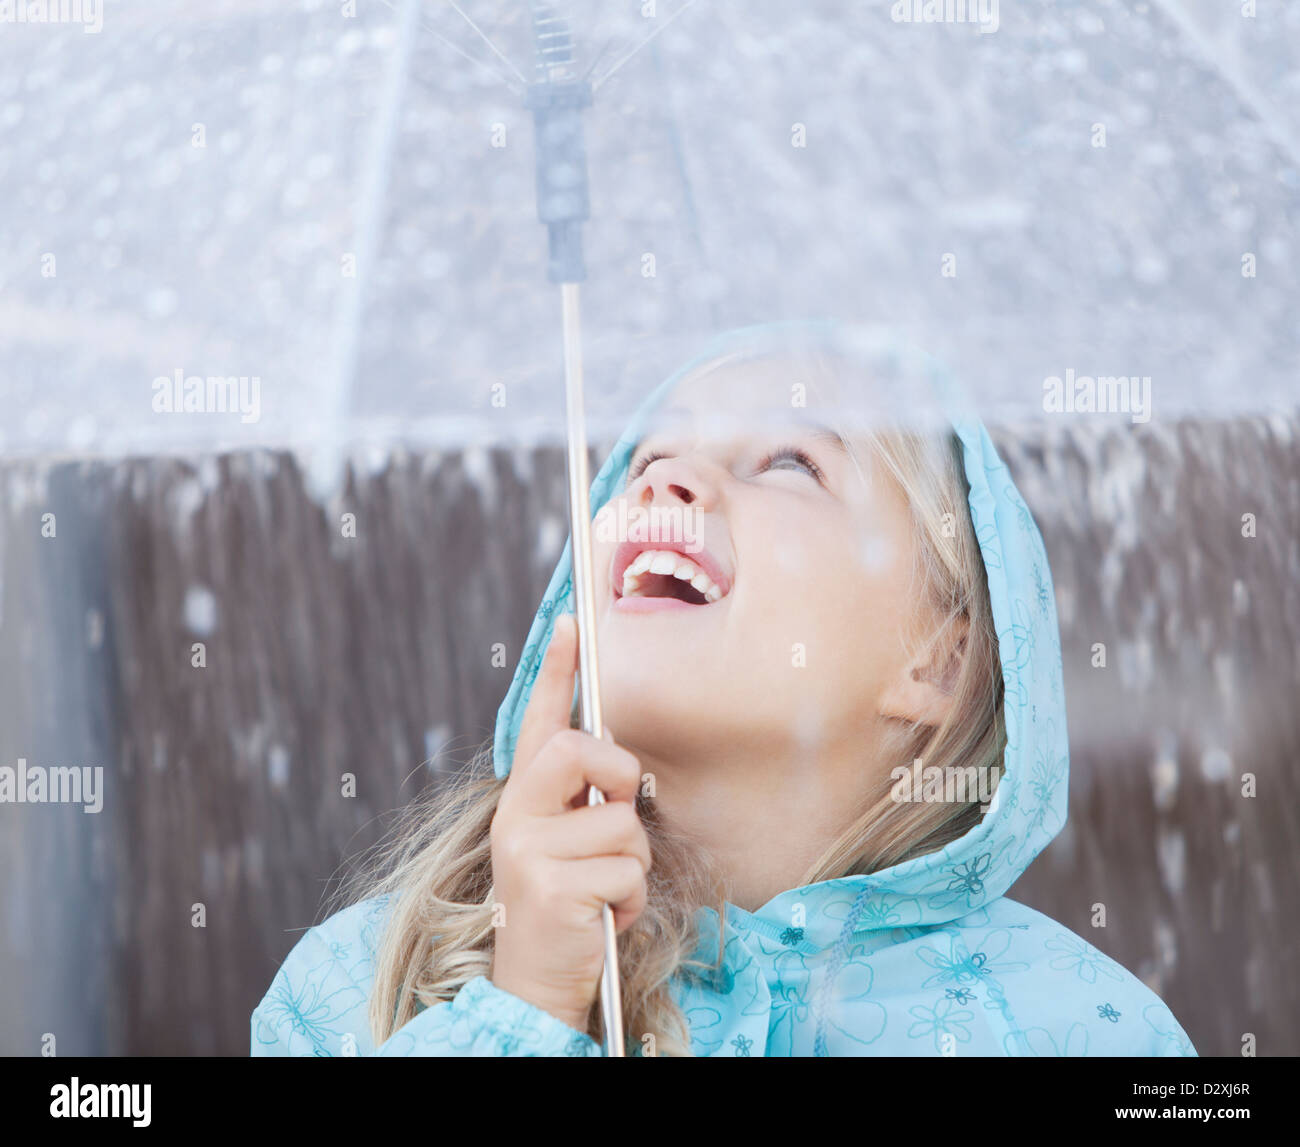 Close up of girl under umbrella looking up at downpour - Stock Image